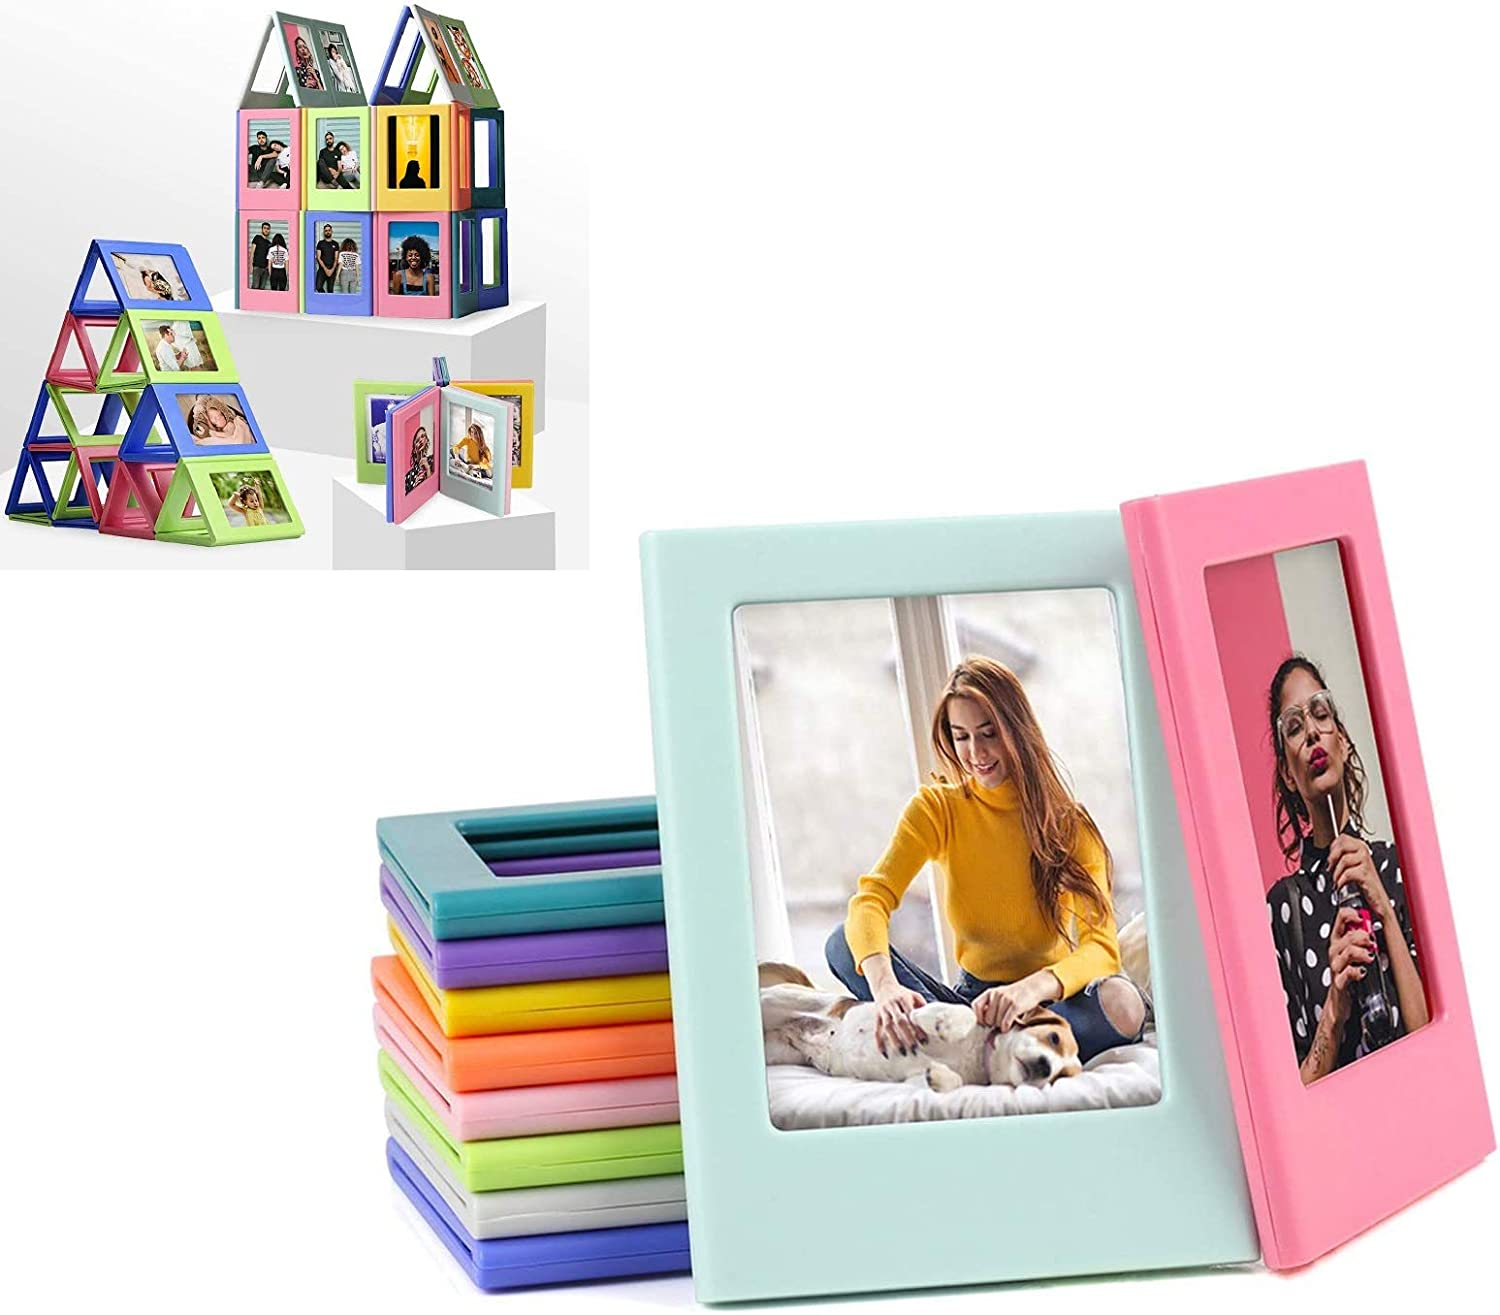 Aomeiter 10 Pack Super intense Limited price sale SALE Thick Mutually Mini Frames Attractive Photo 3in